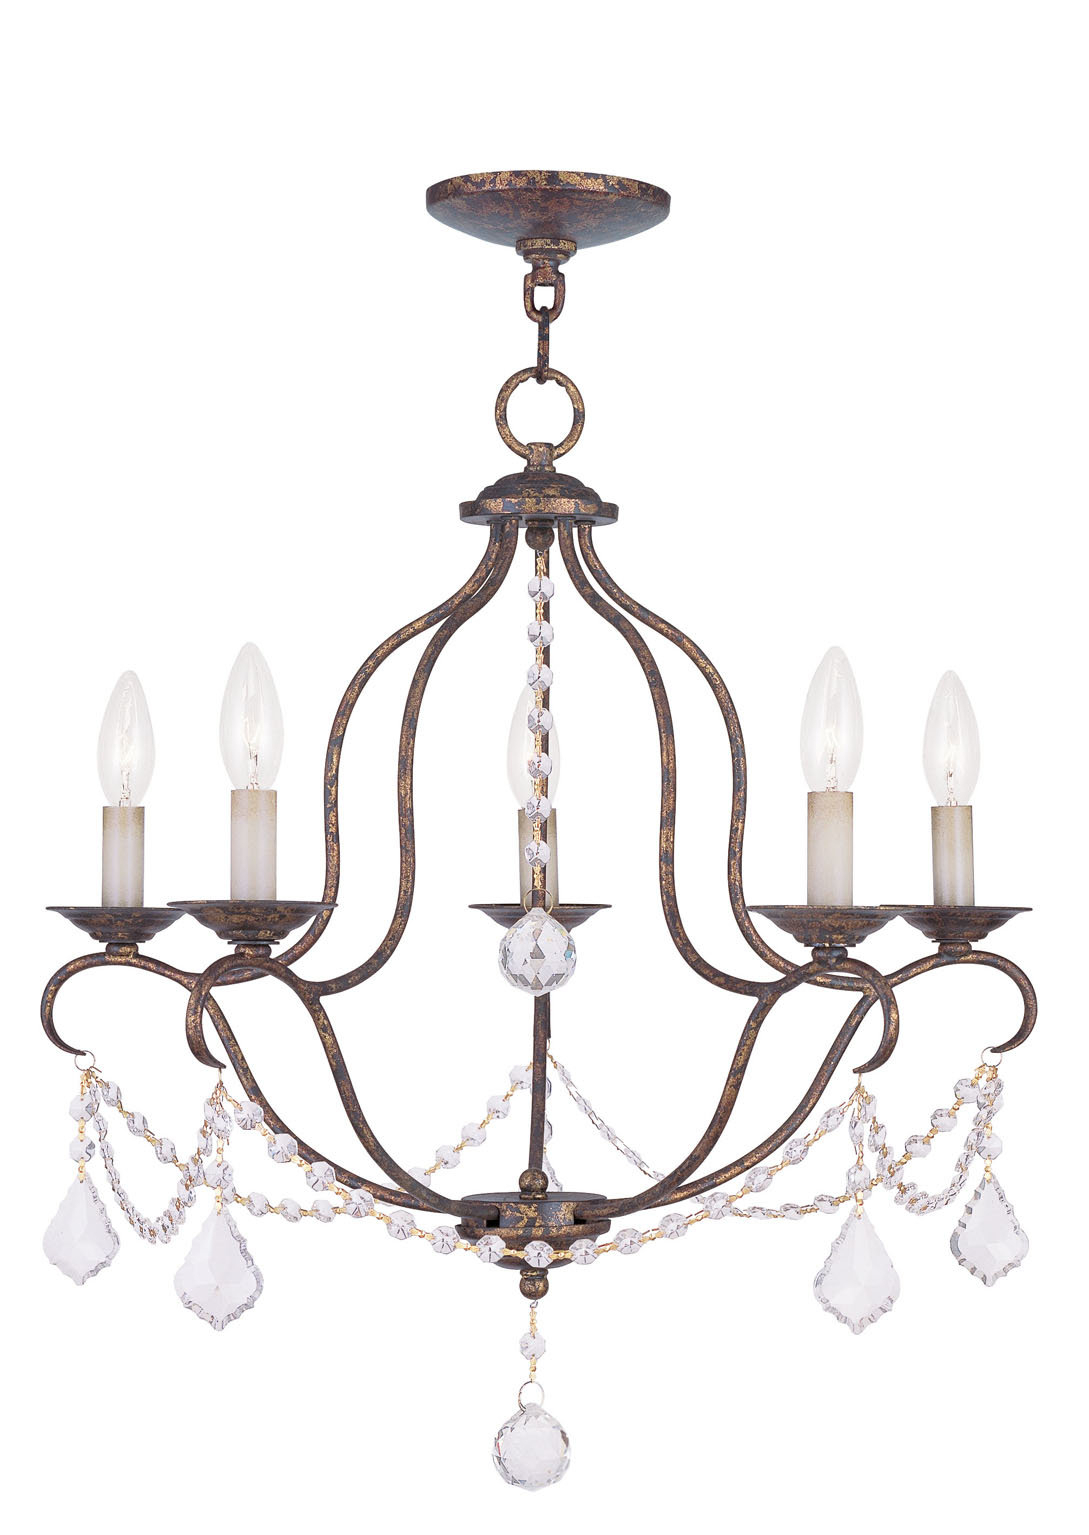 Accomac 5 Light Candle Style Chandelier With Regard To Florentina 5 Light Candle Style Chandeliers (View 22 of 30)